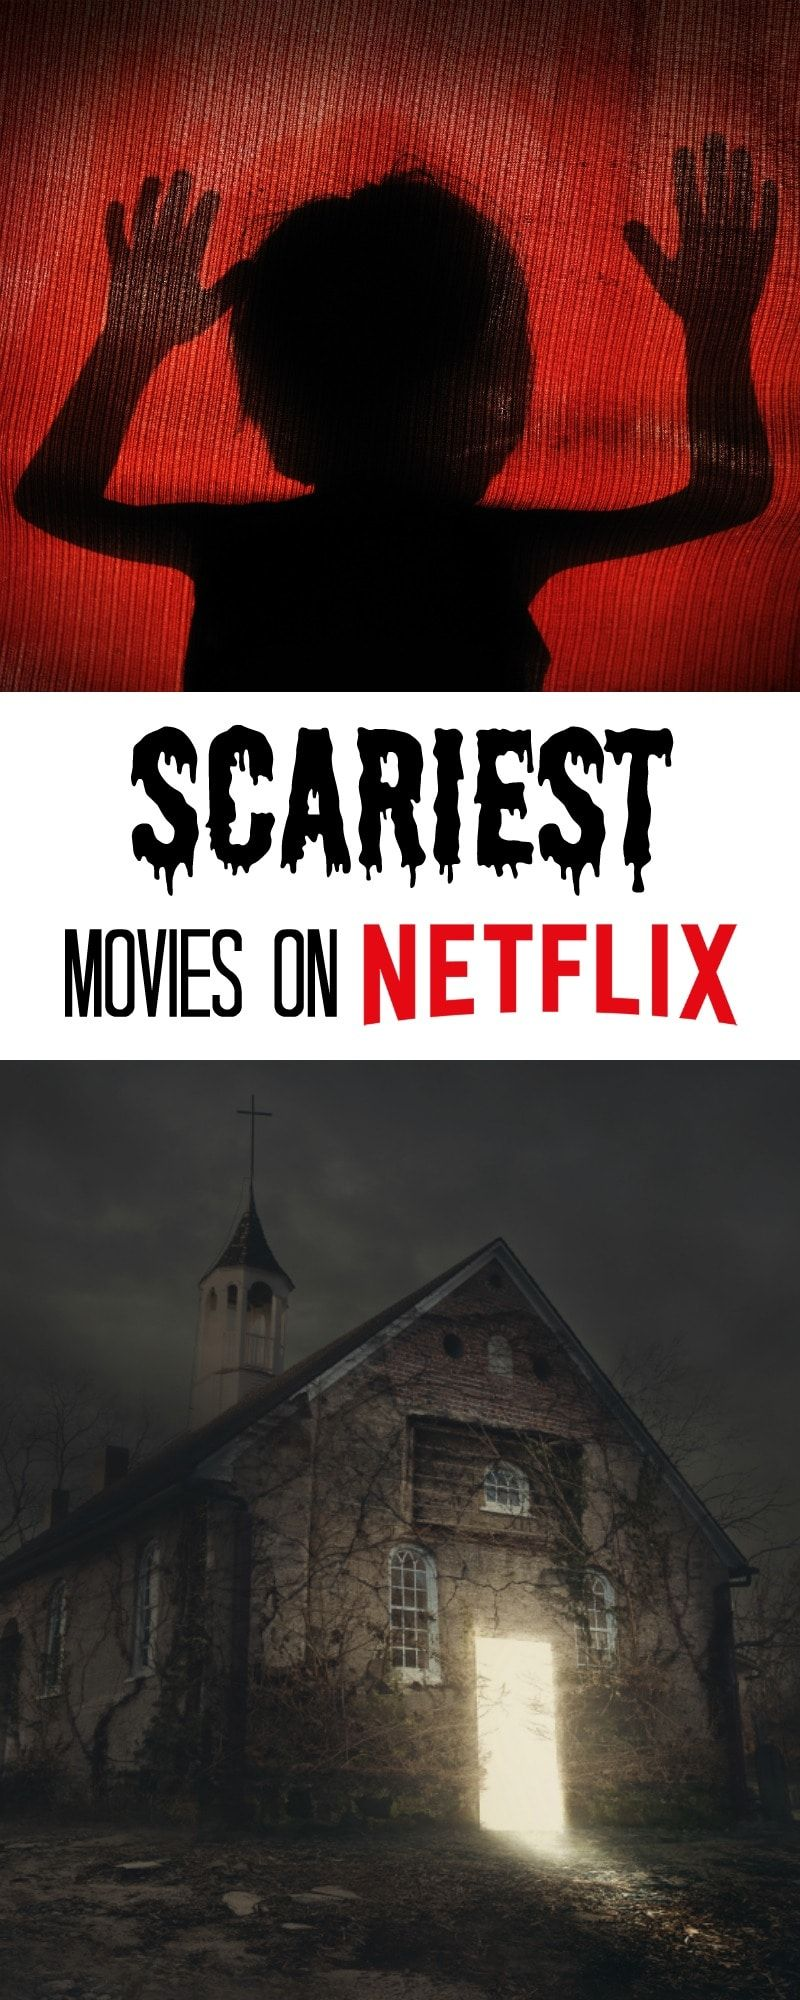 Scariest Movies on Netflix (With images) Scary movies